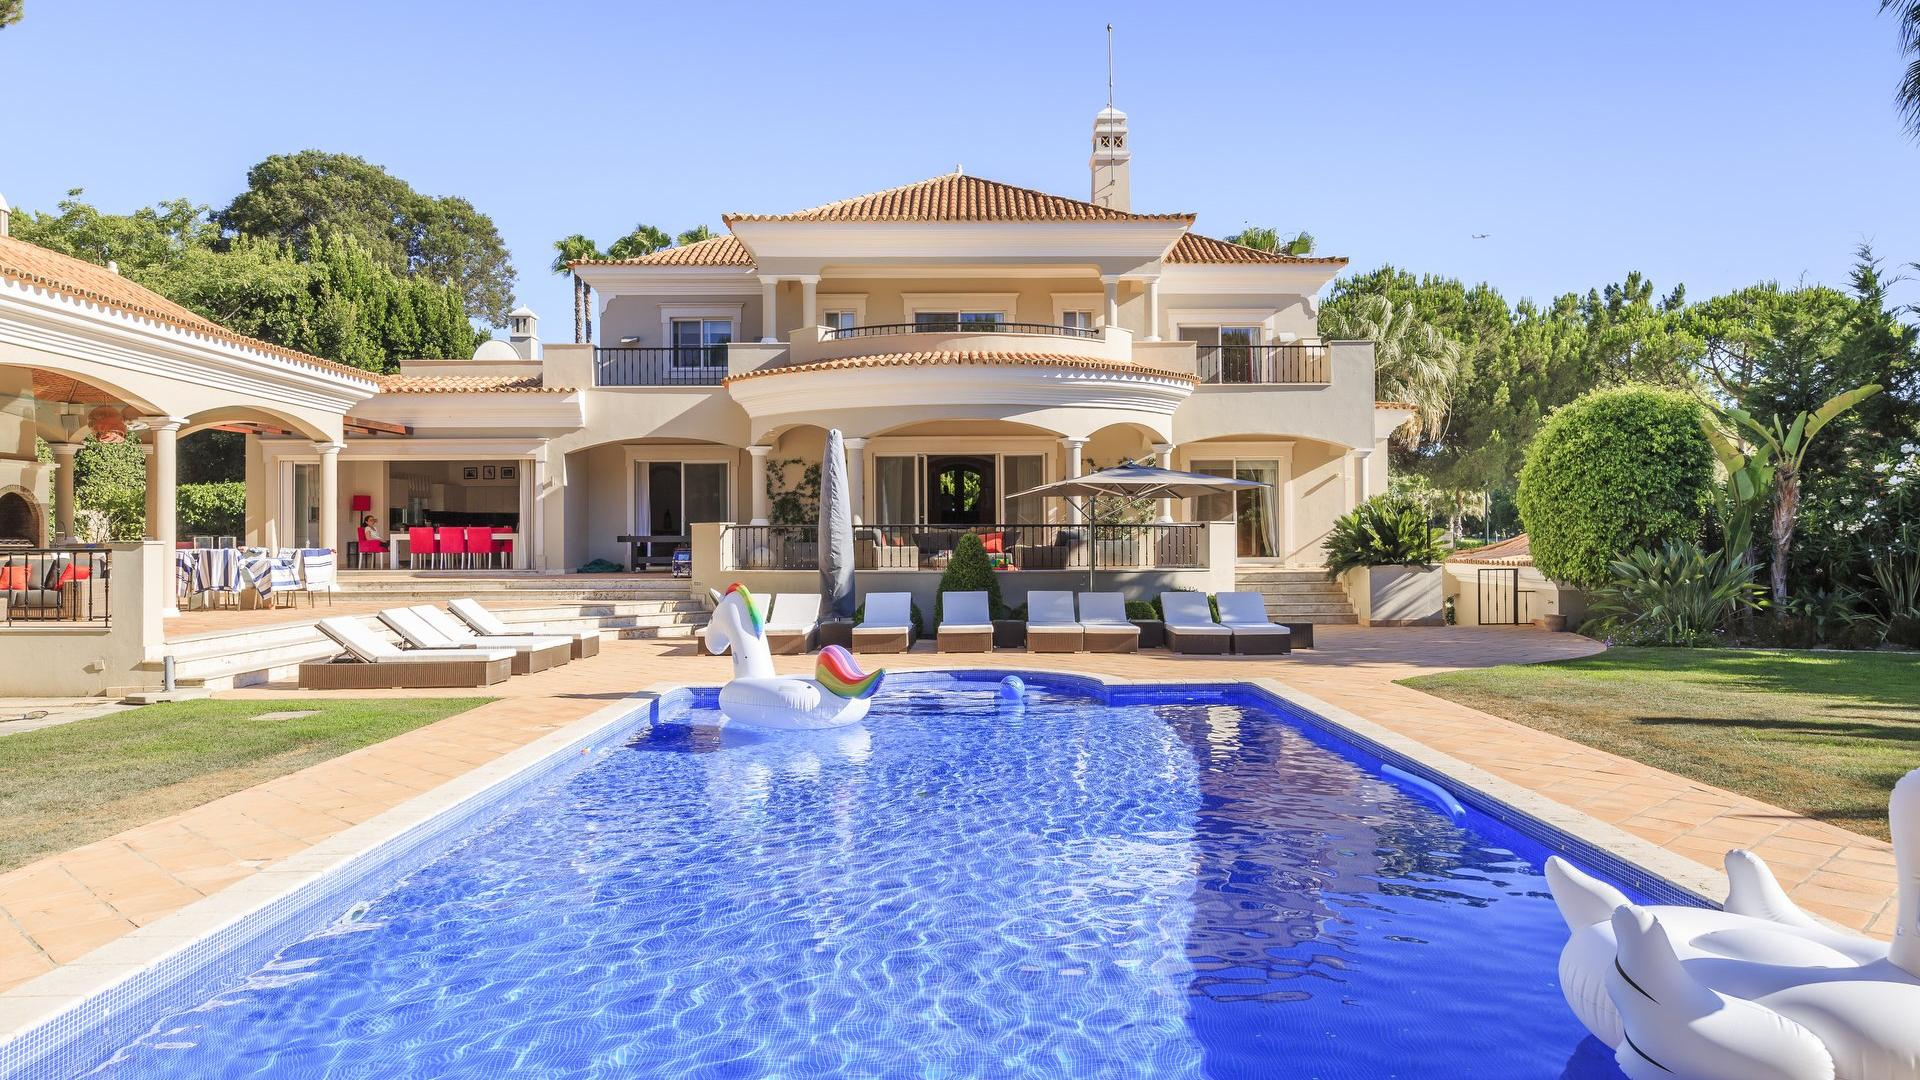 Villa Meadow - Quinta do Lago, Algarve - _S__8045.jpg